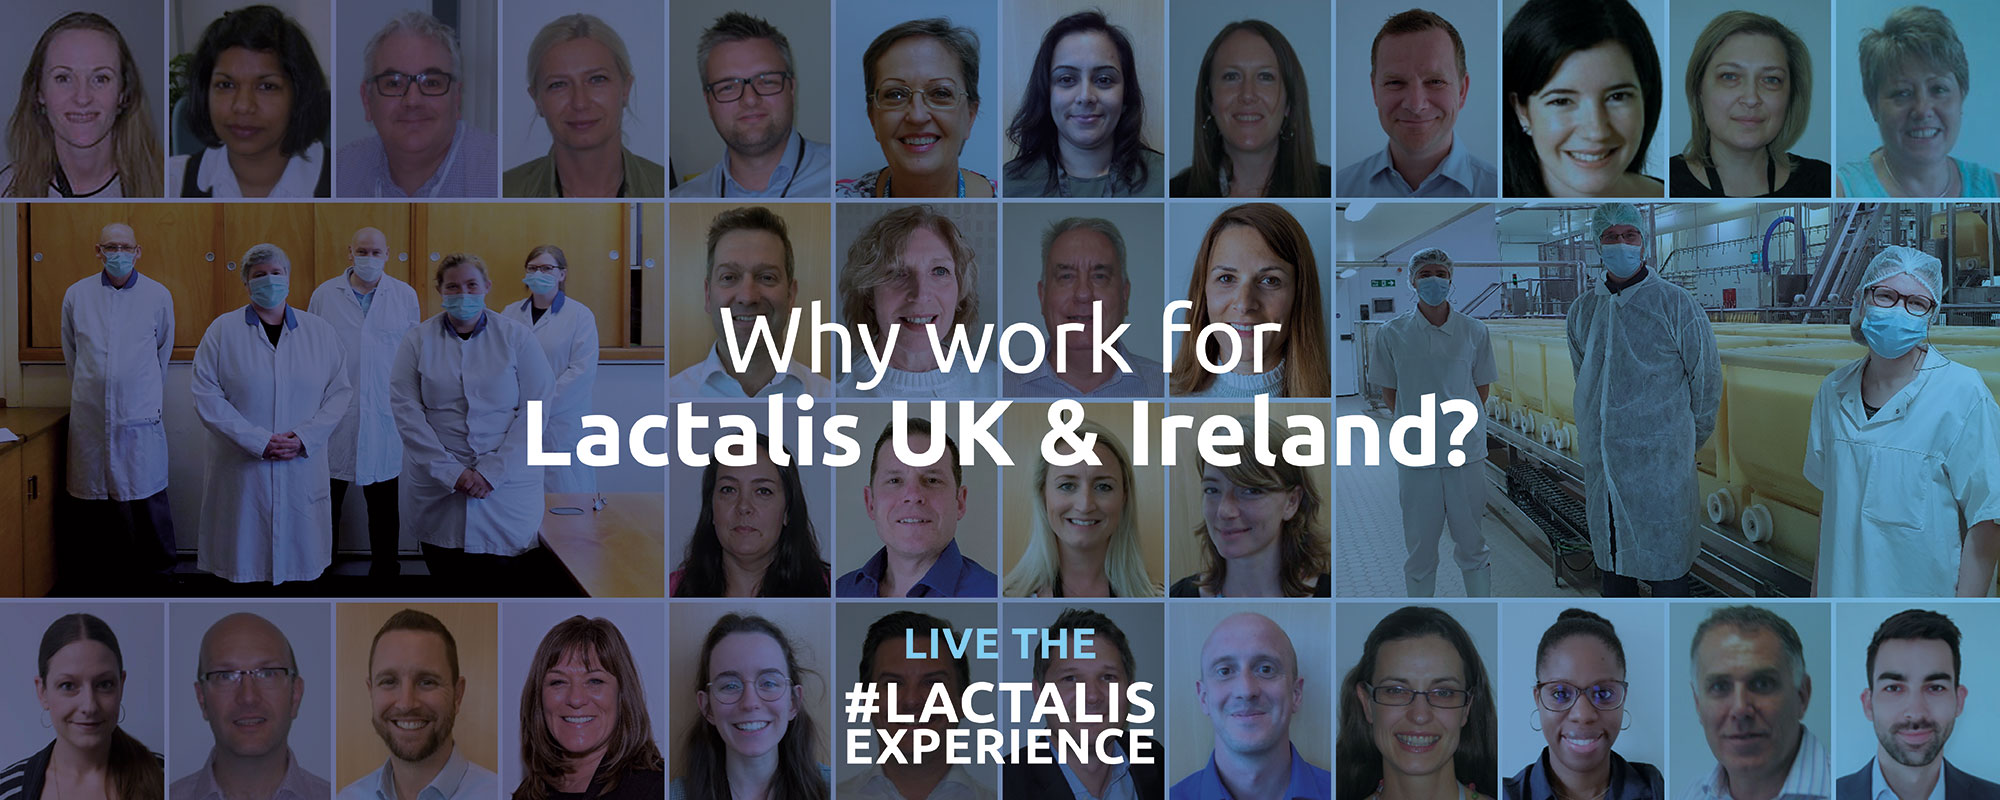 Why Work For Lactalis Uk